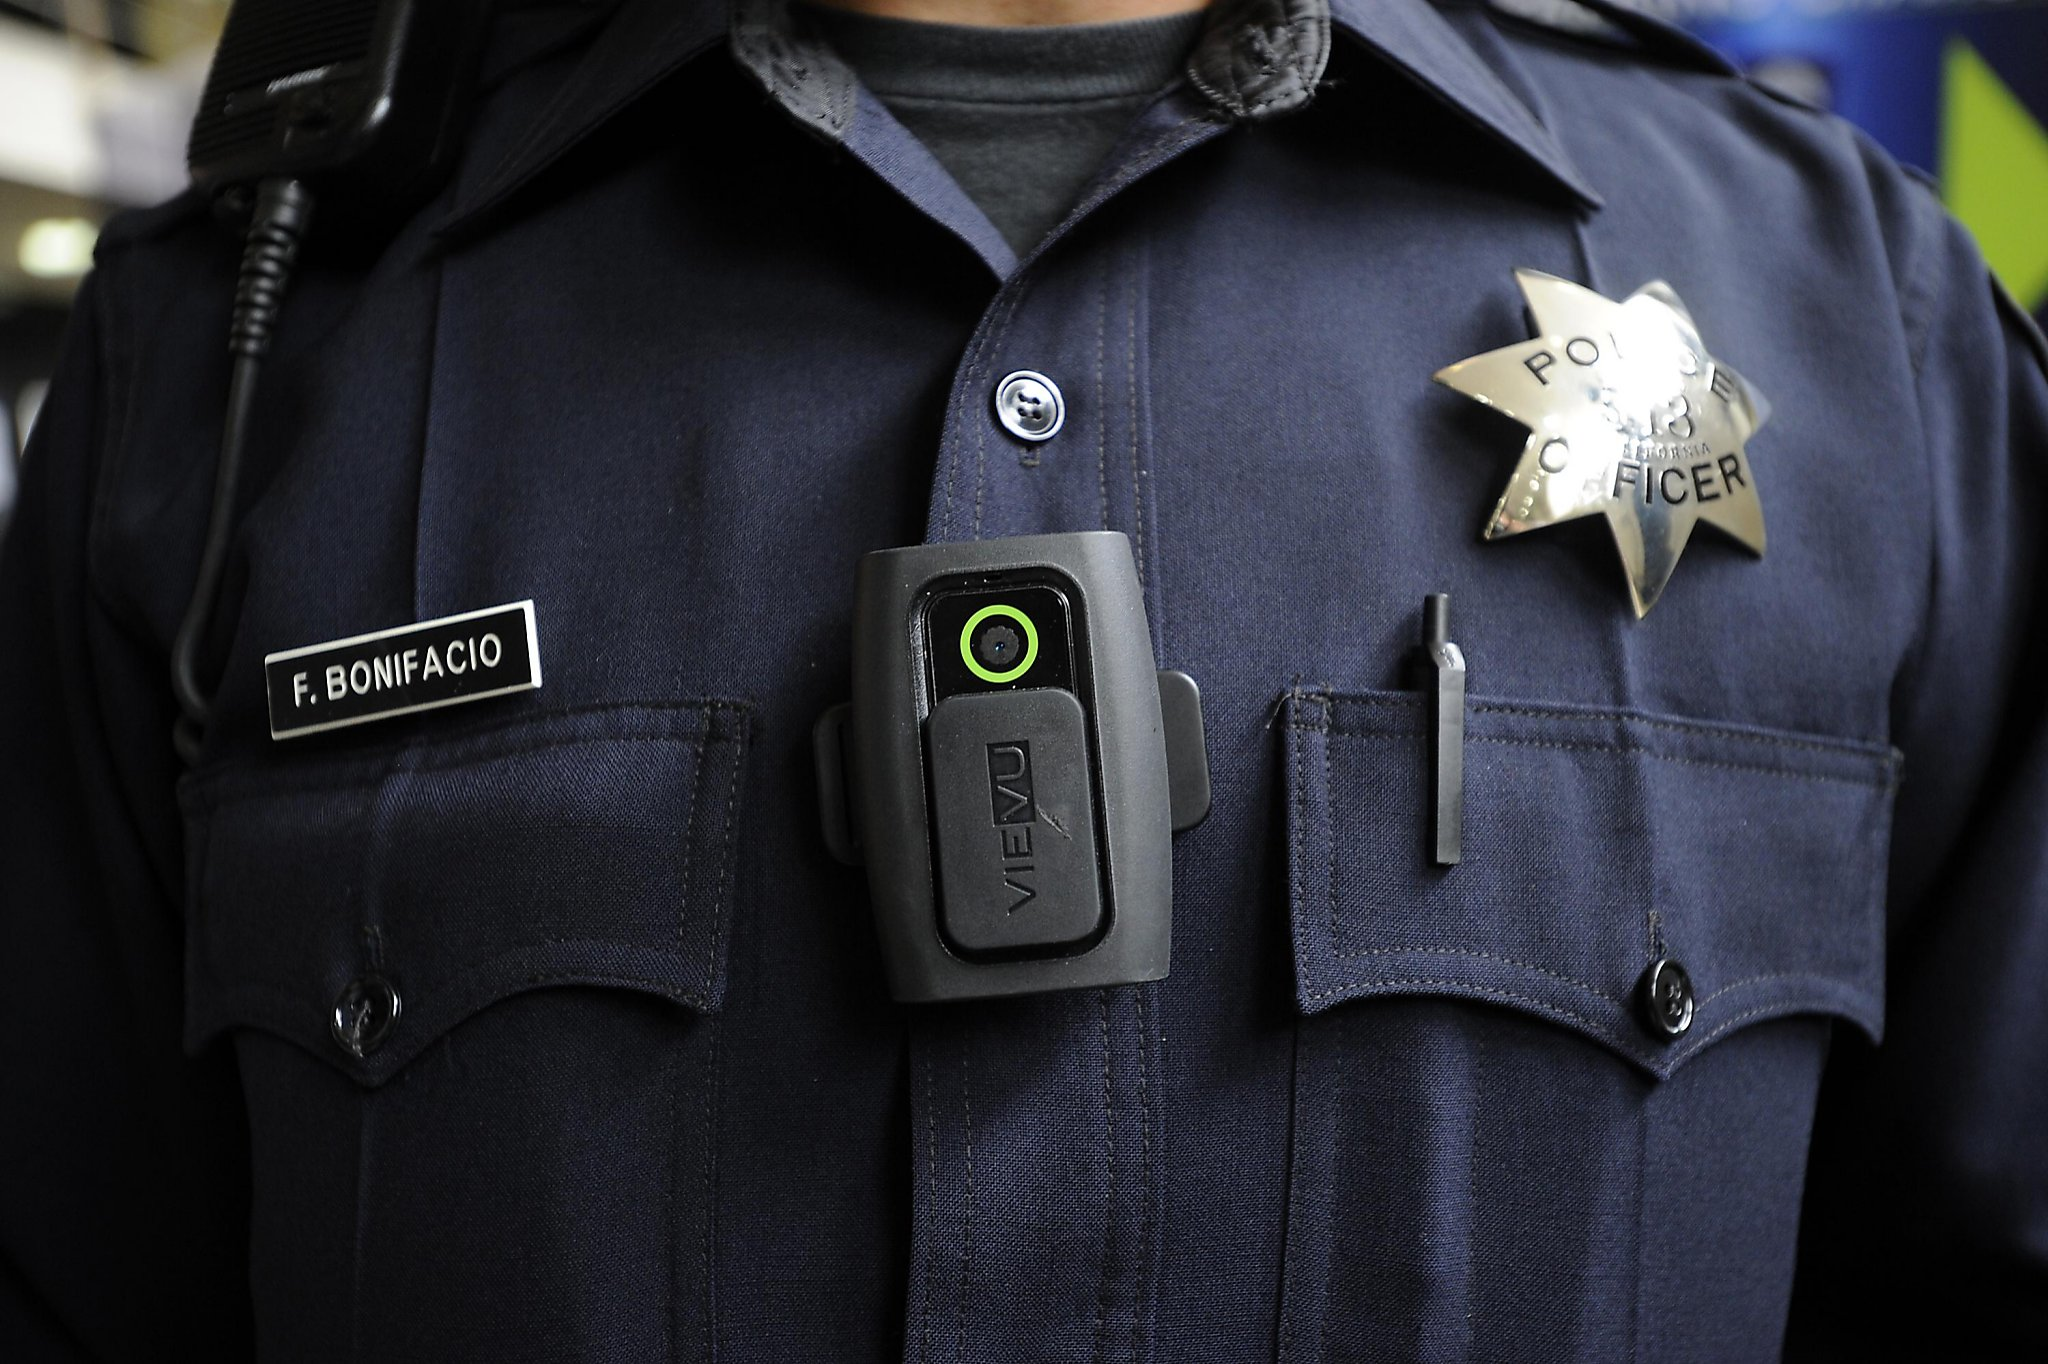 Police Body Cameras >> It's important for SF to get body-camera rules for police right - SFChronicle.com